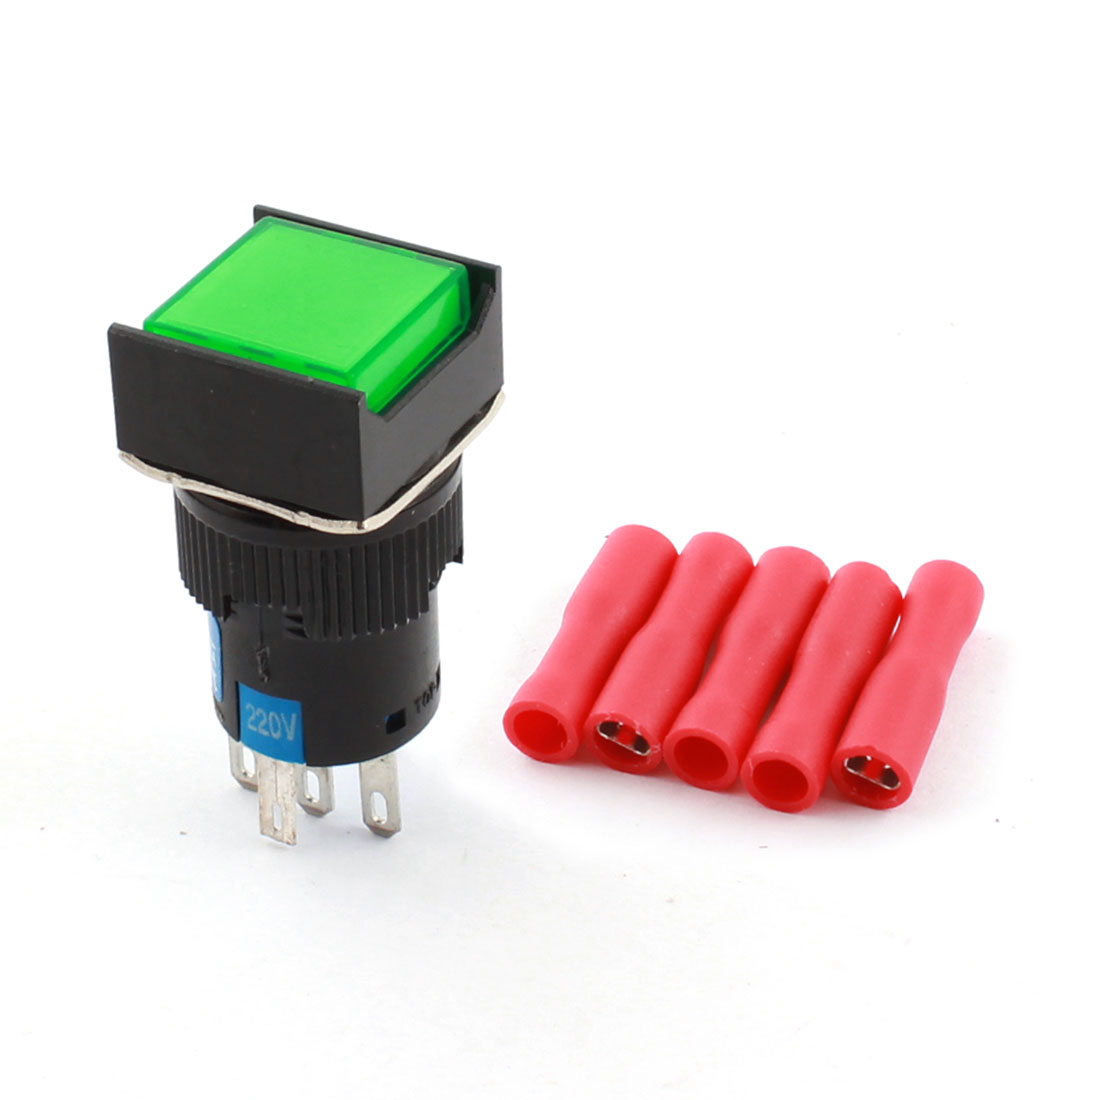 AC 220V Green Indicator Light 5Pins 16mm Thread Panel Mounted SPDT Momemtary Square Pushbutton Switch w 5pcs Compatible Terminals